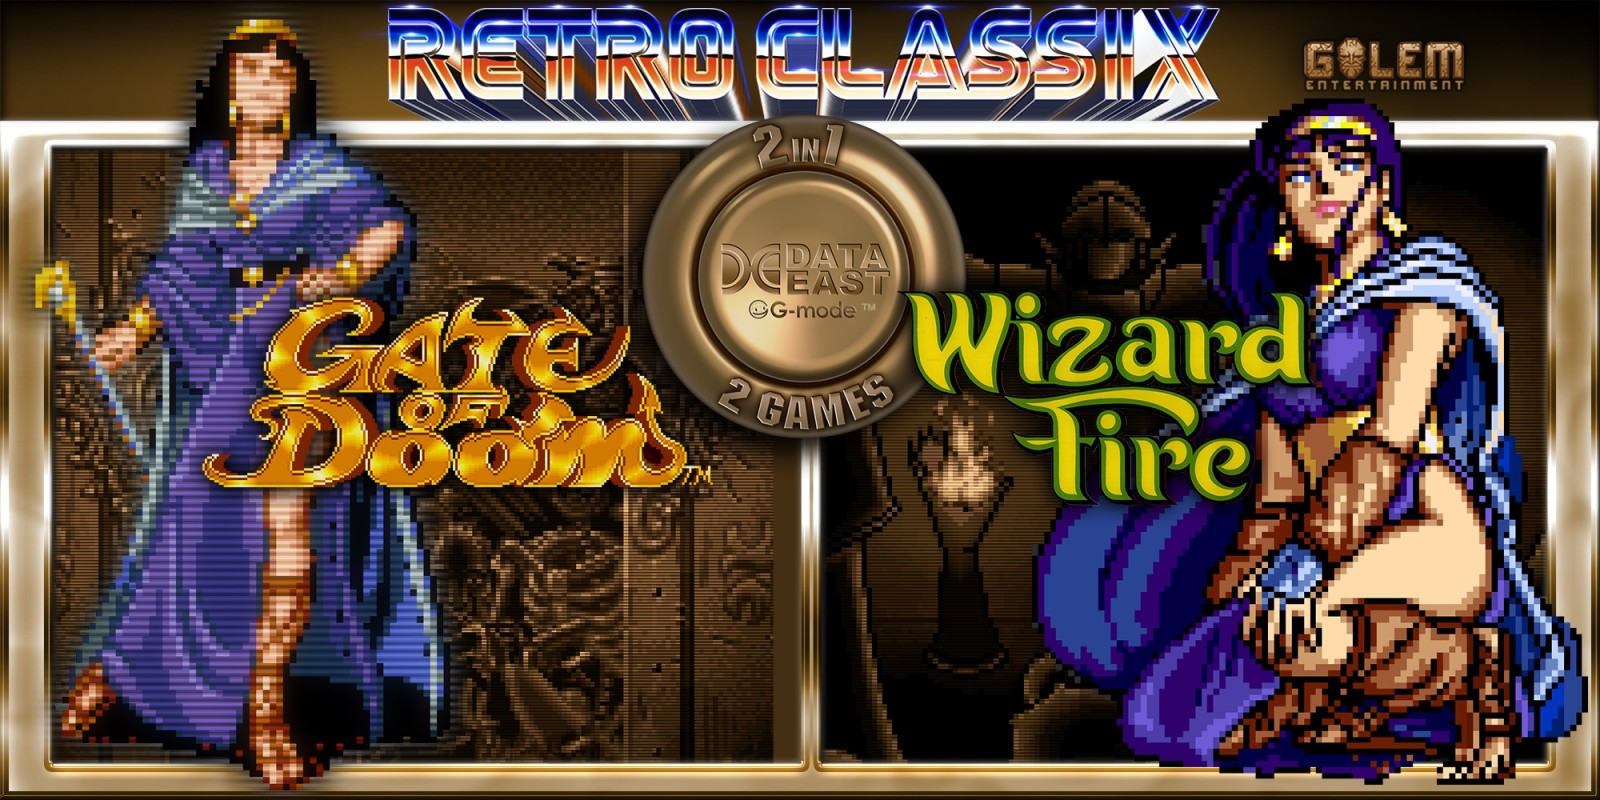 Retro Classix 2-in-1 Pack: Gate of Doom & Wizard Fire